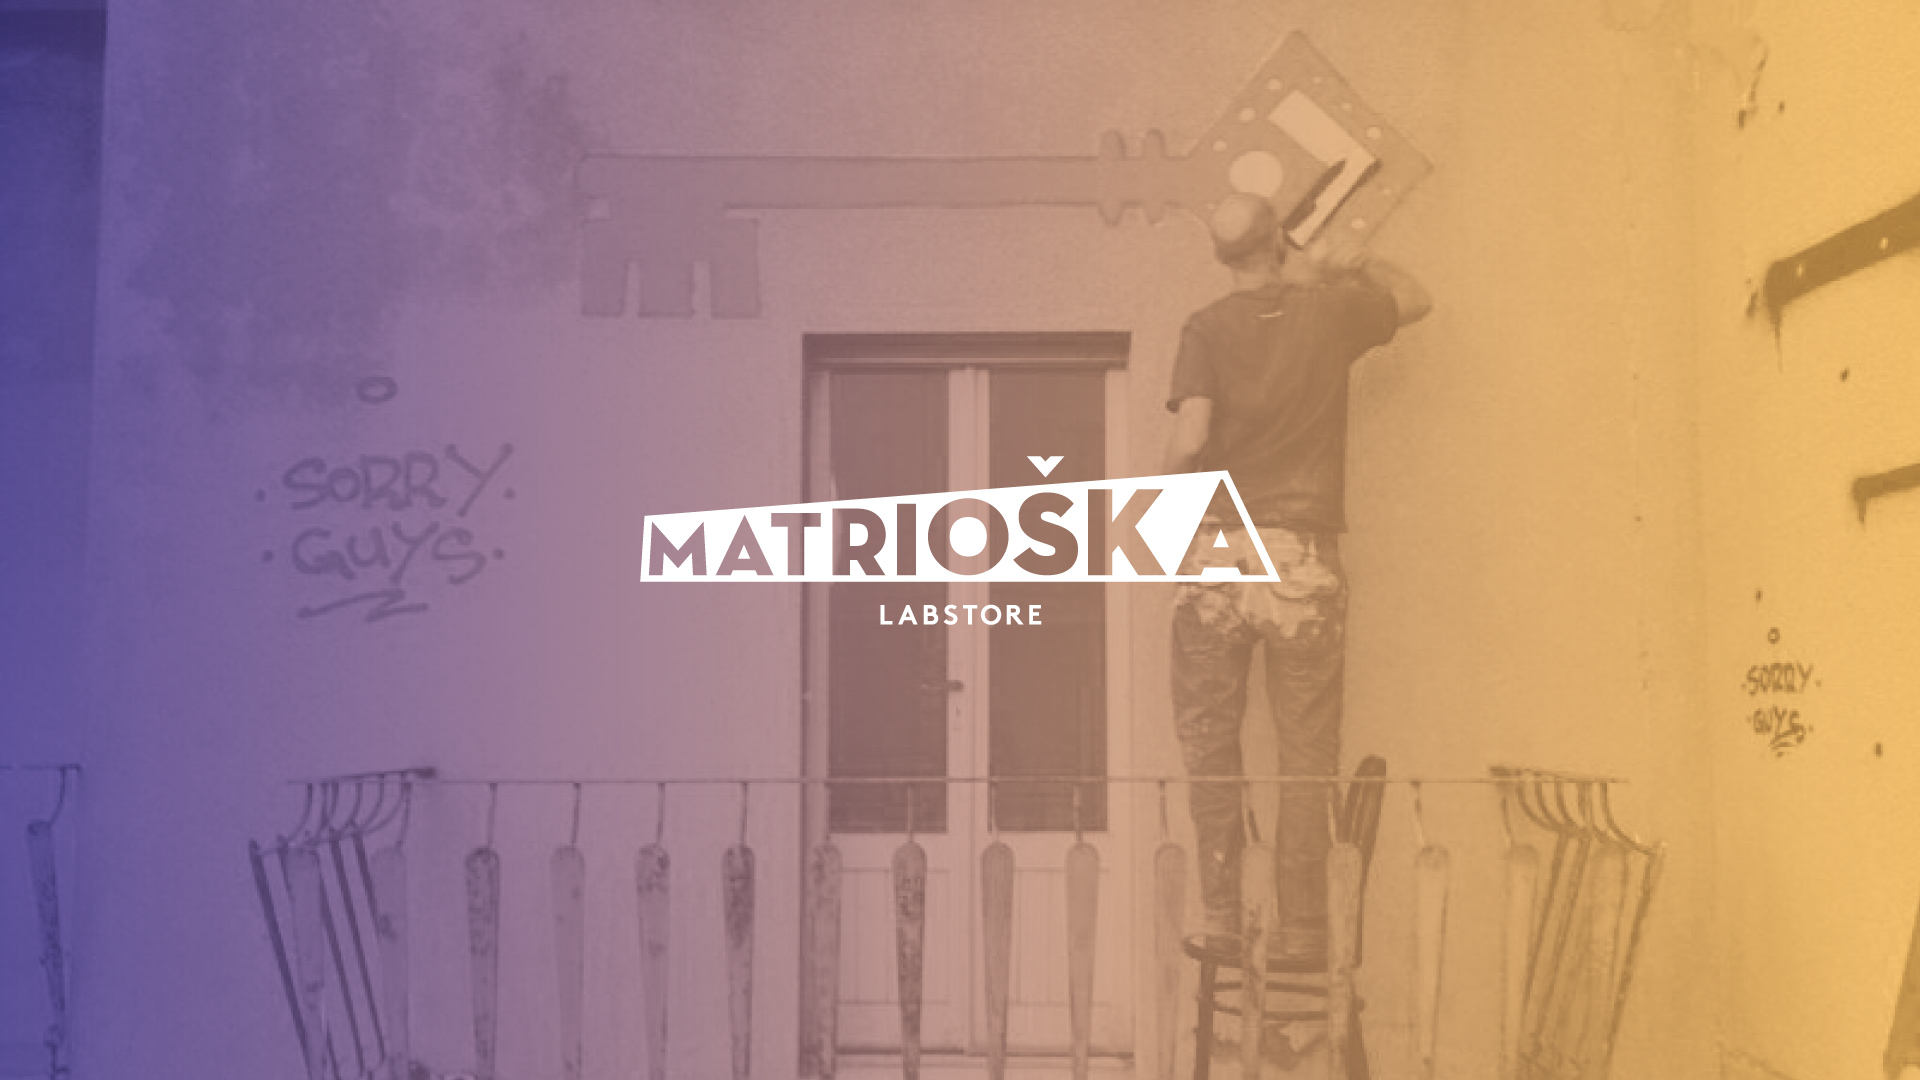 matrioska#6 MatrioskArte